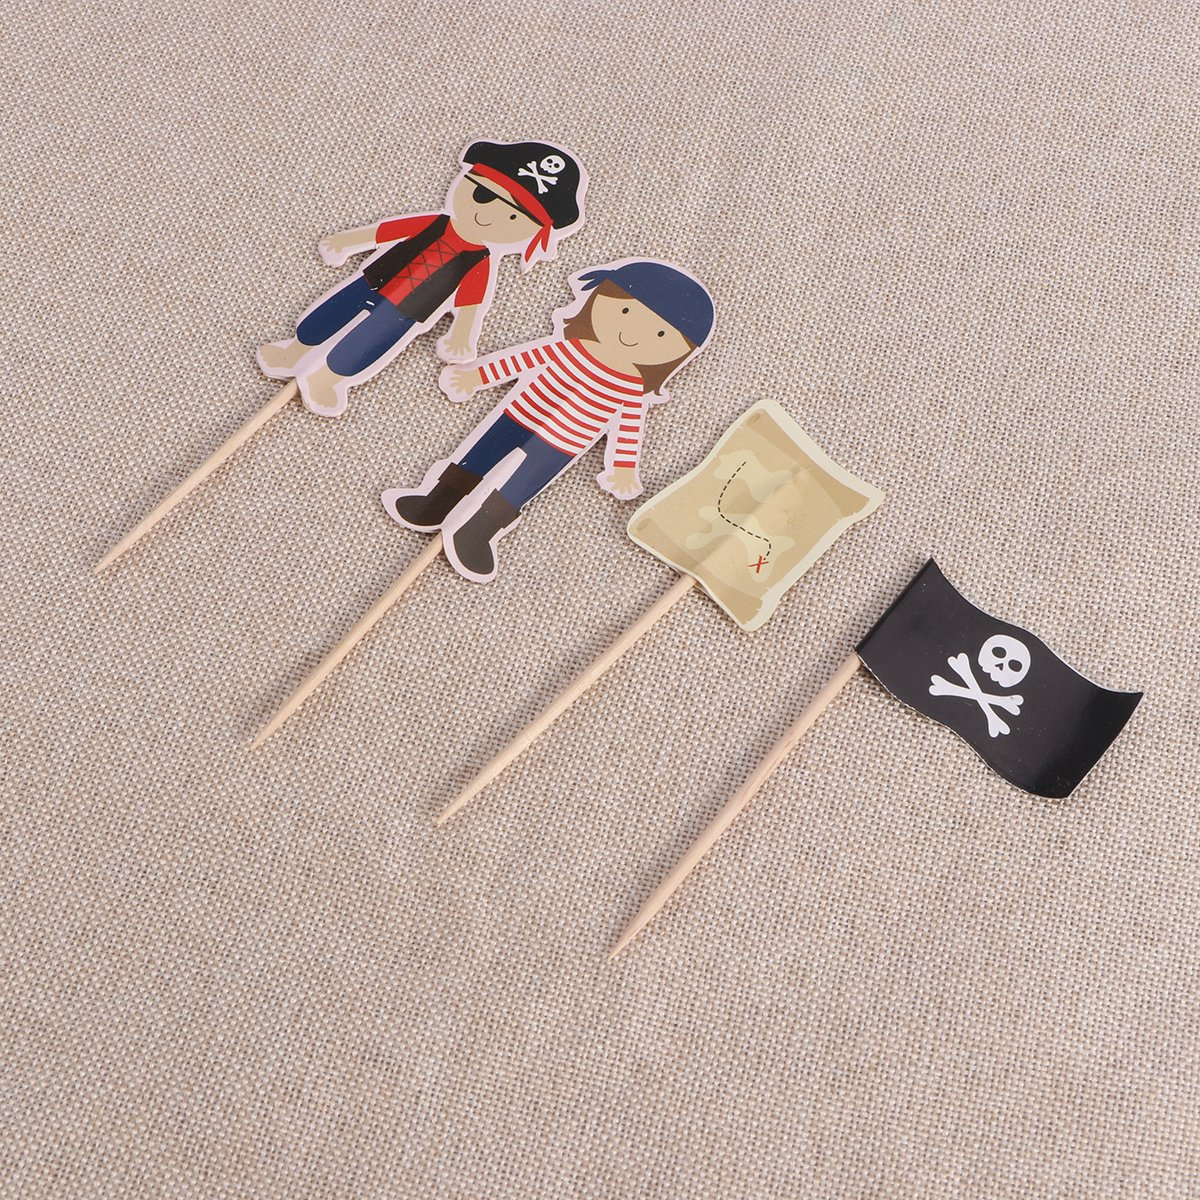 Tinksky Pirate Cake Bunting Toppers Flag Banner Picks Wrap Kit for Kids Birthdays Random Color